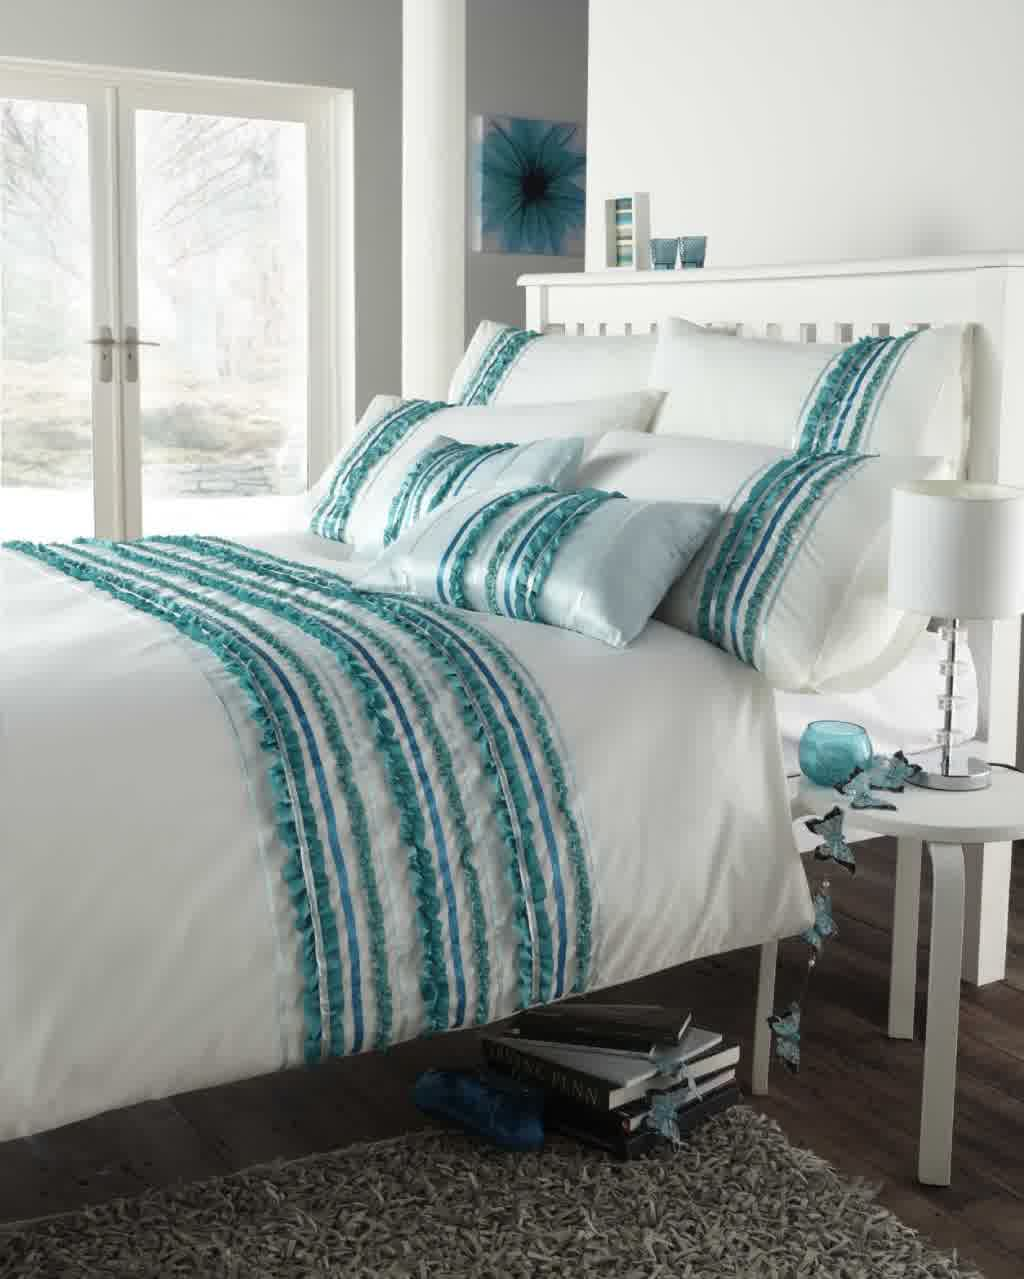 white bedding set with turquoise strips decoration in standard size bed with white wood headboard gray